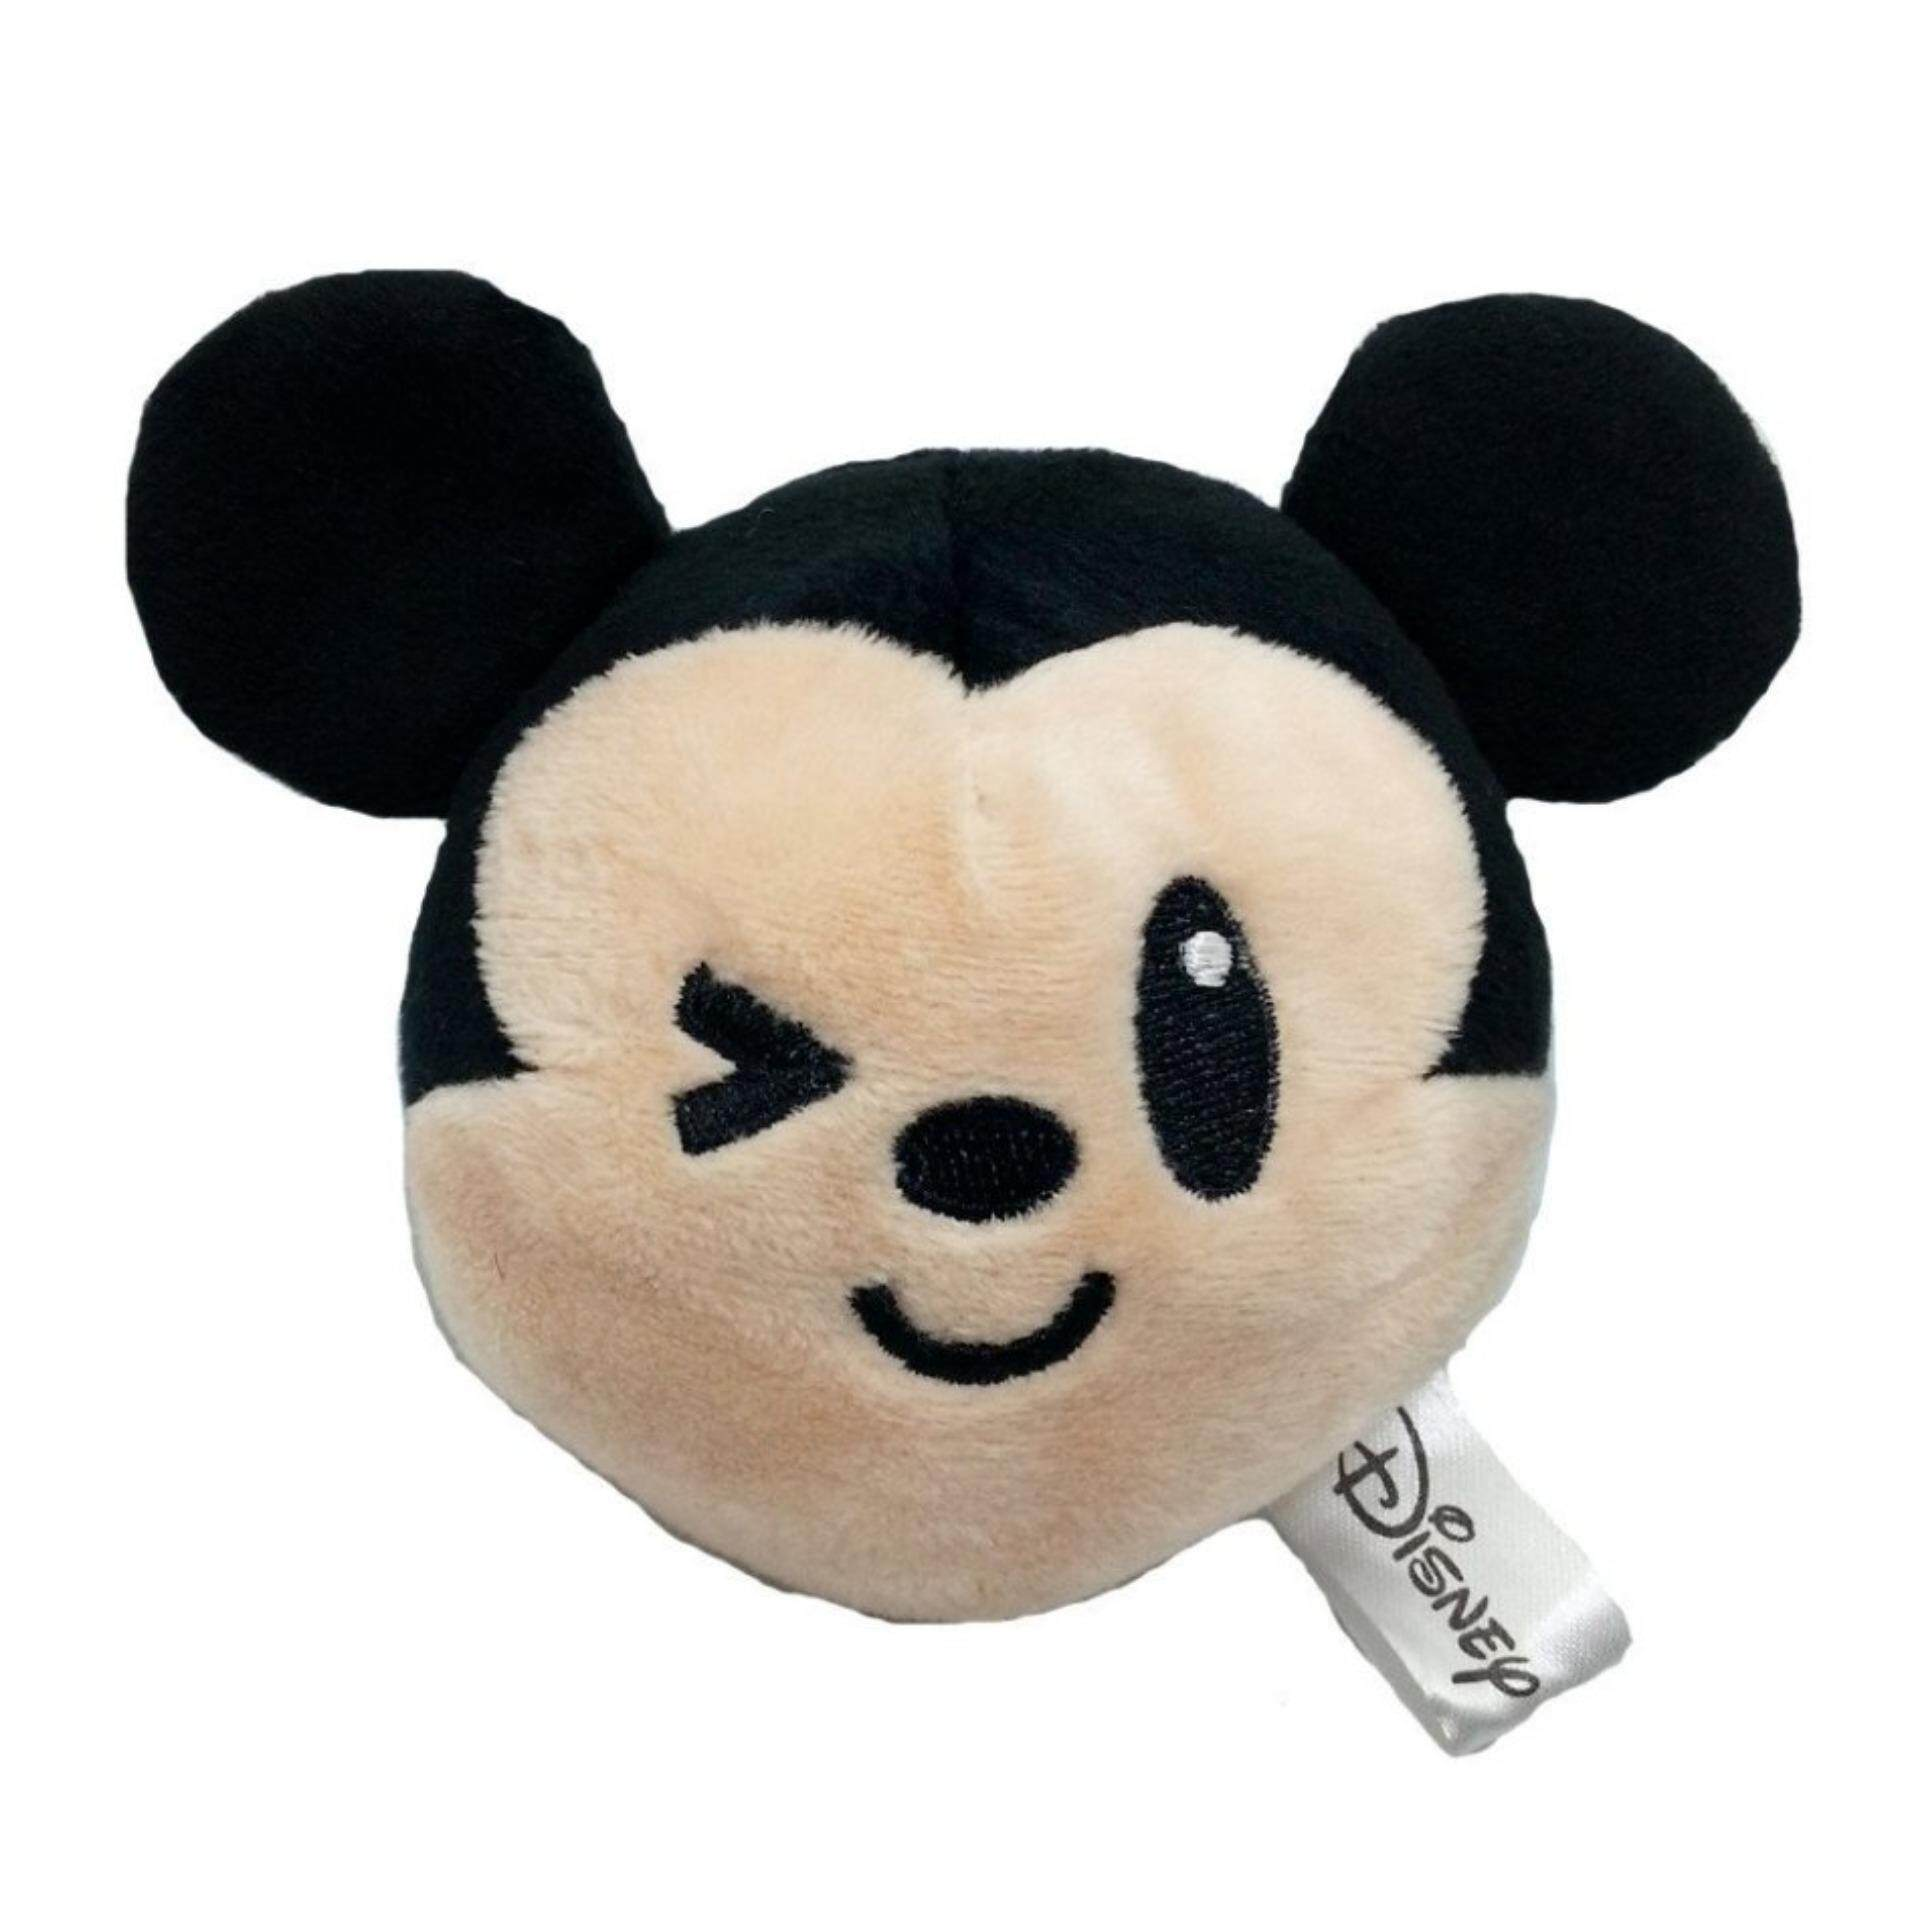 Disney Emoji Beanbags 2.5 Inches - Mickey Wink toys for girls